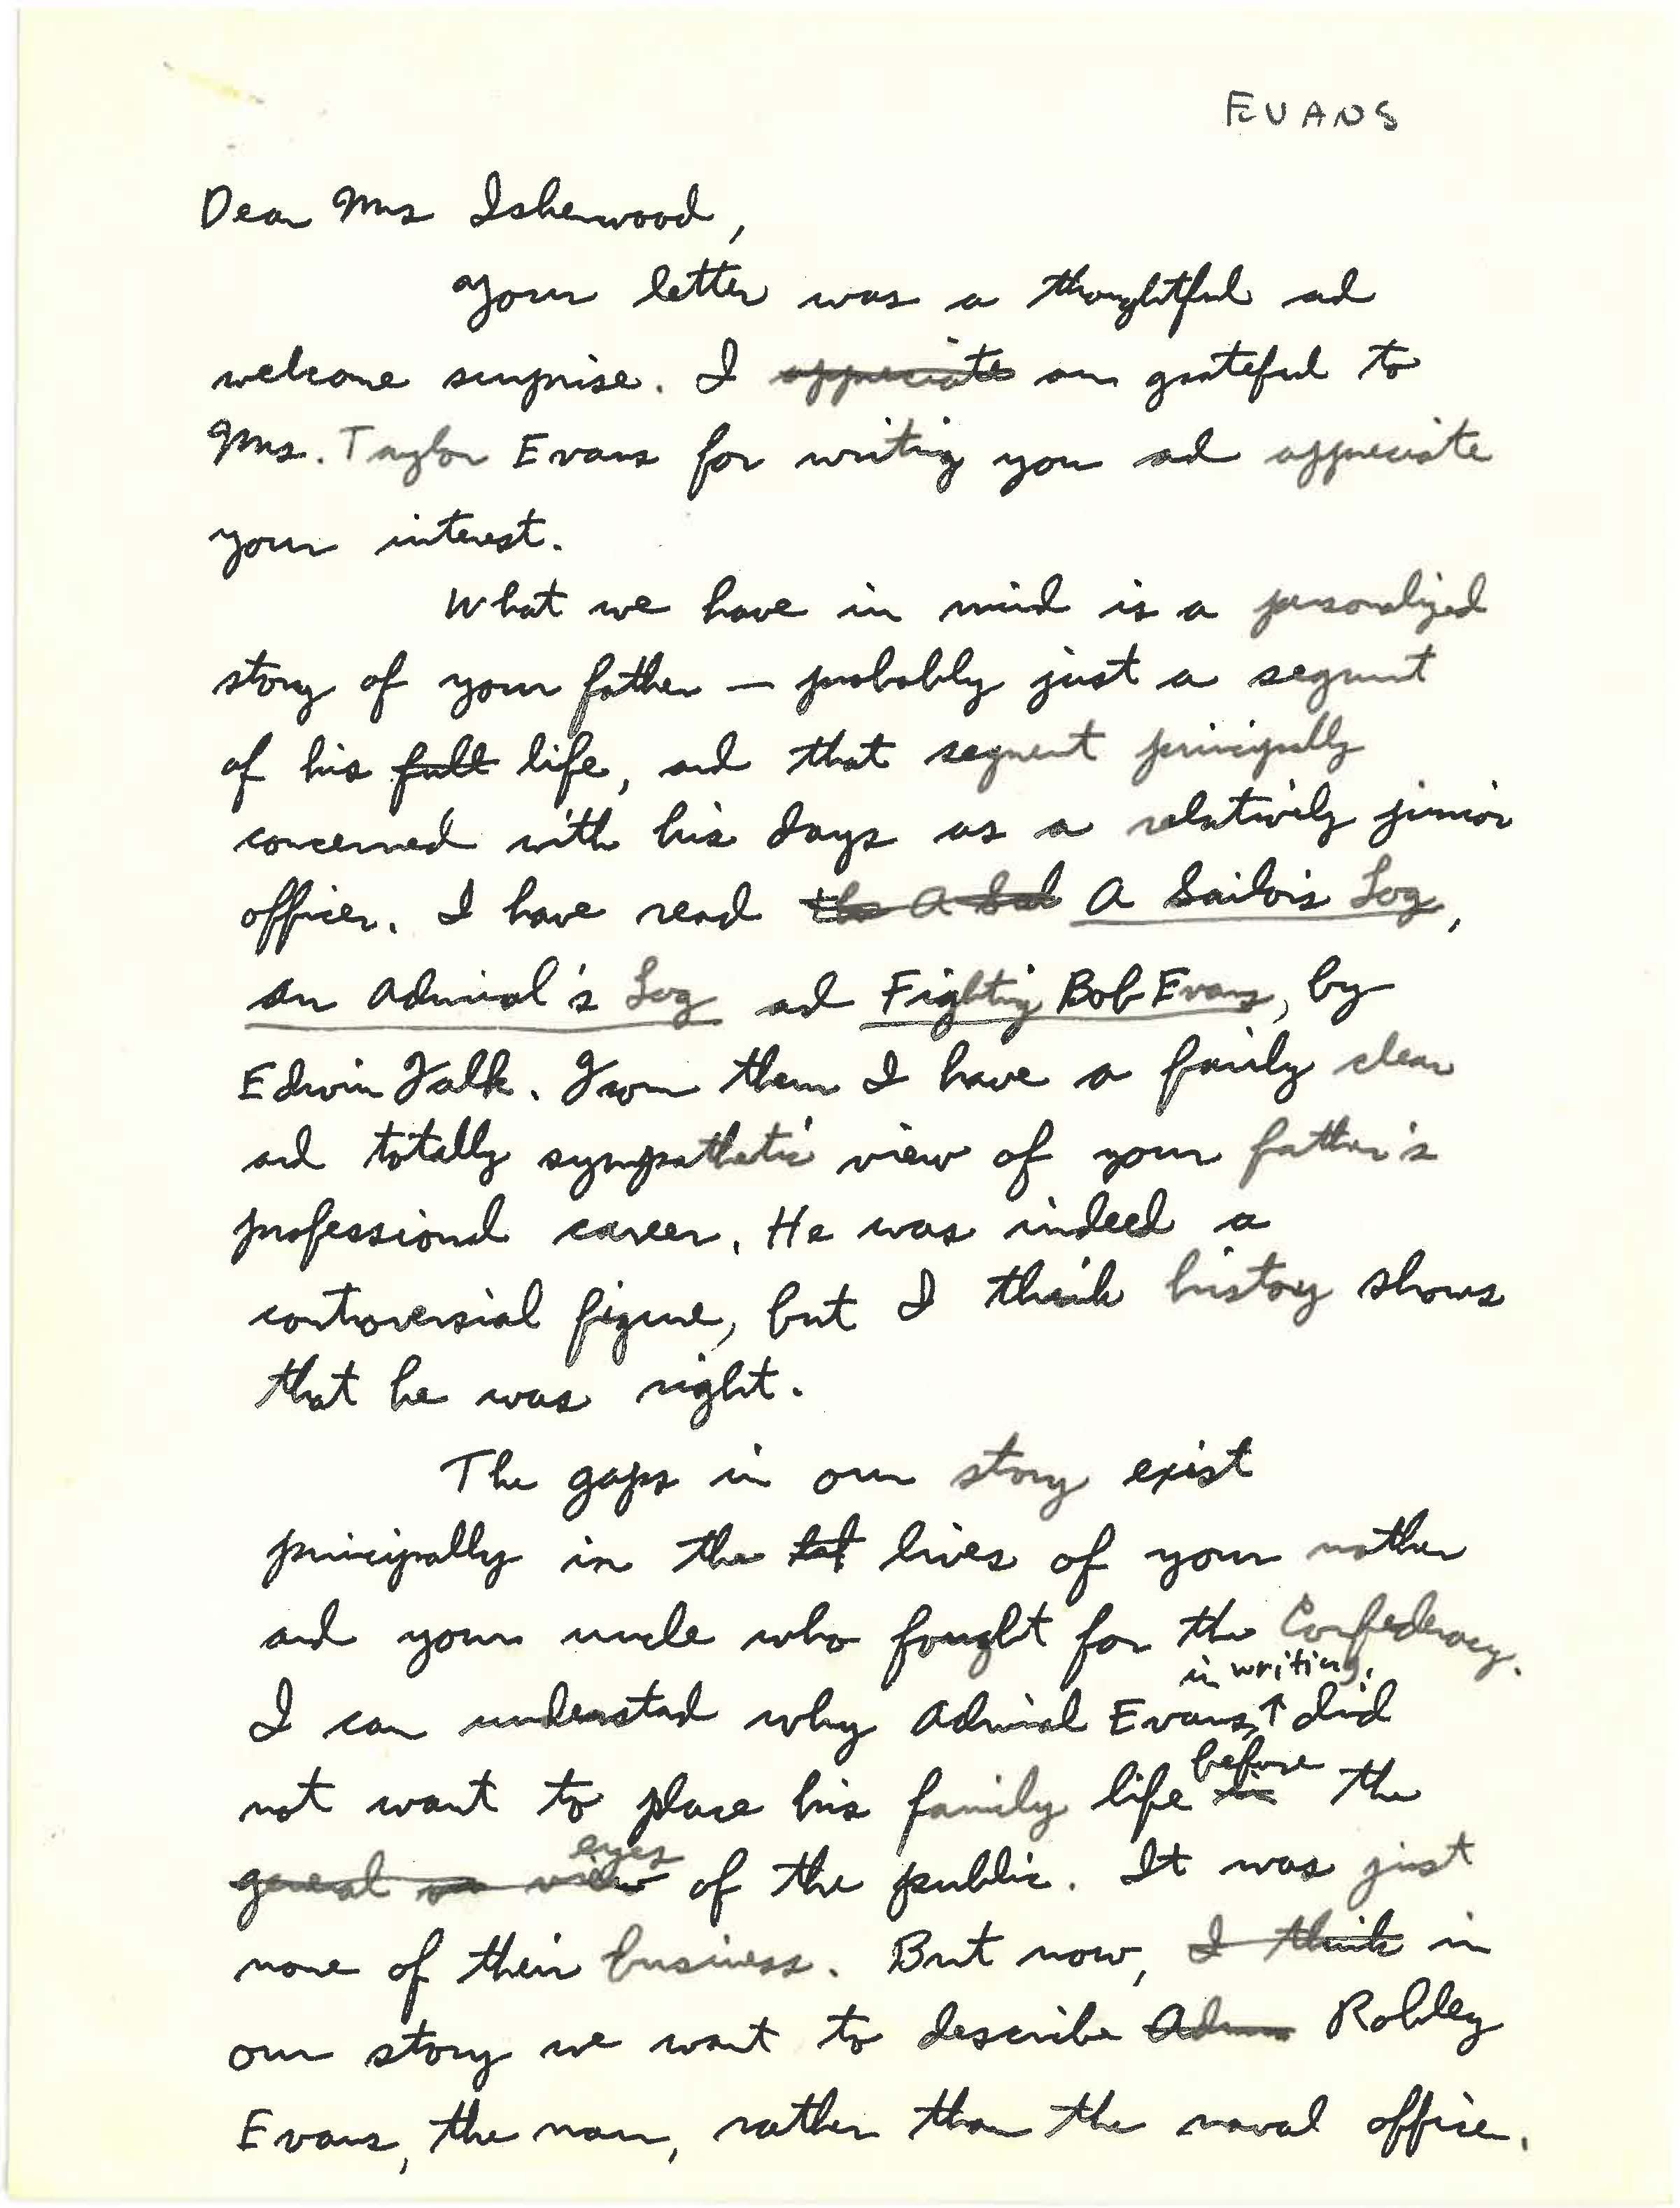 Unsigned letter to Mrs. Isherwood